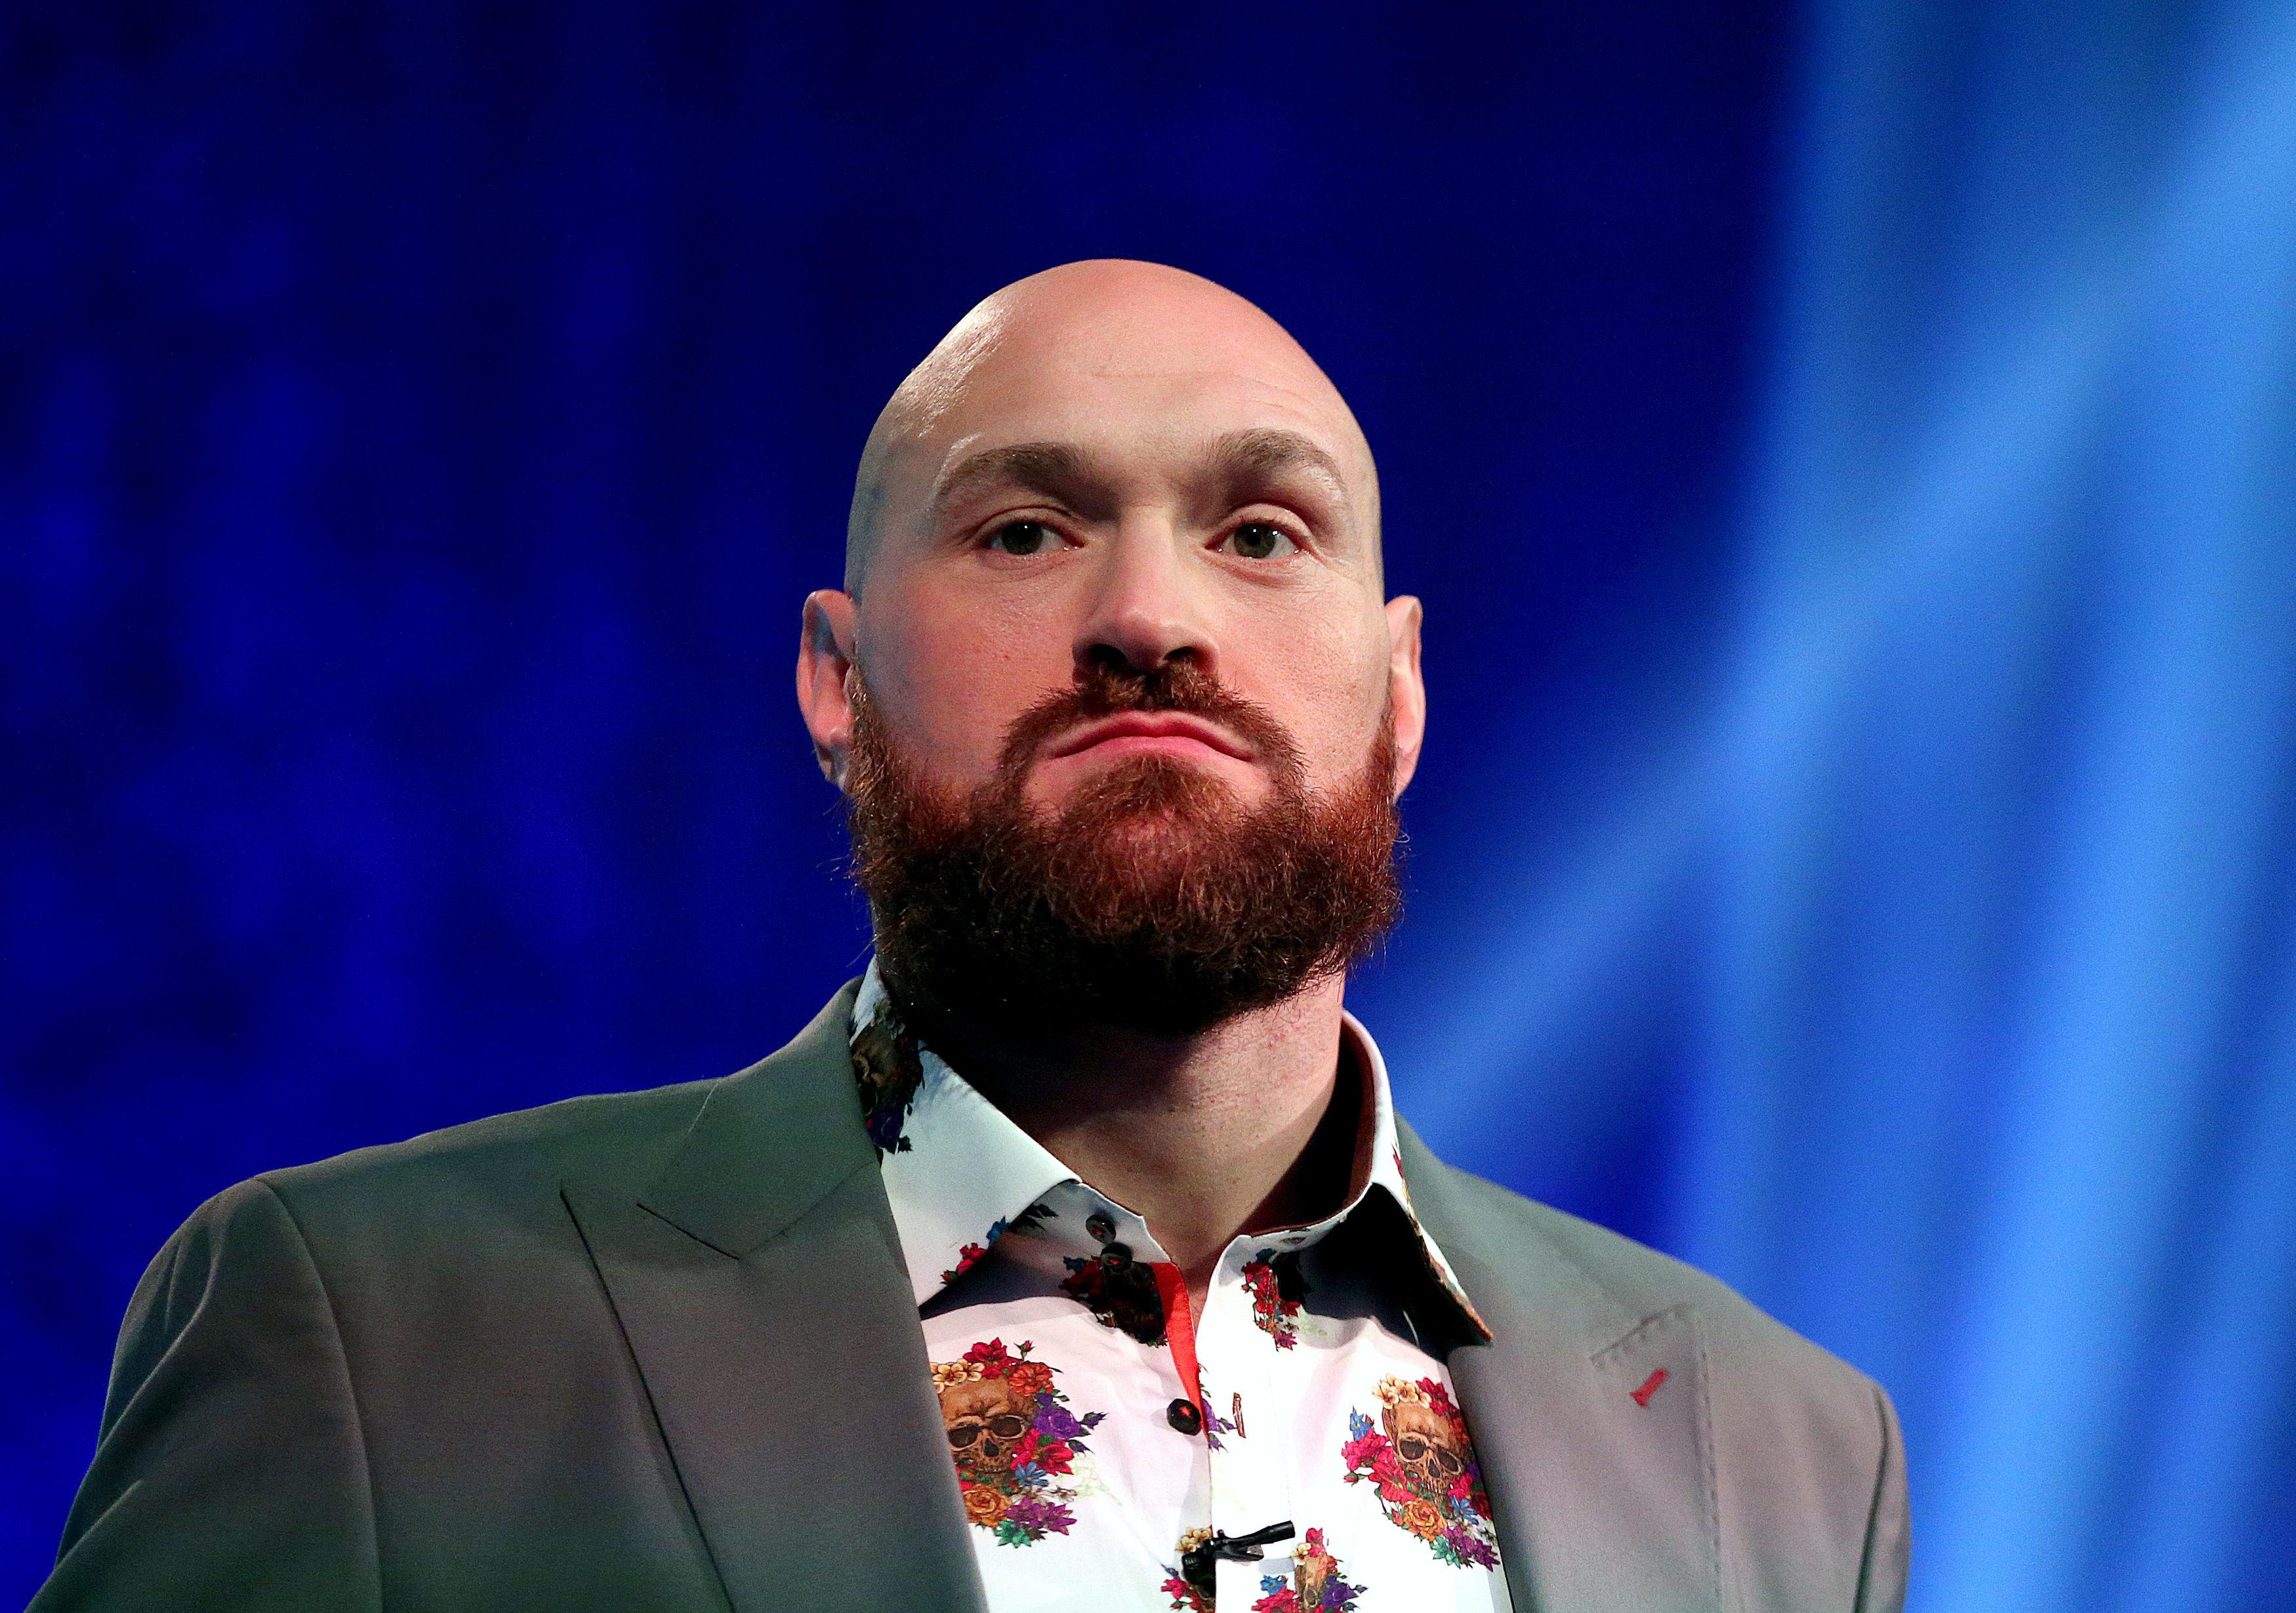 Former heavyweight world champion Tyson Fury will tour the UK and Ireland for 21 days